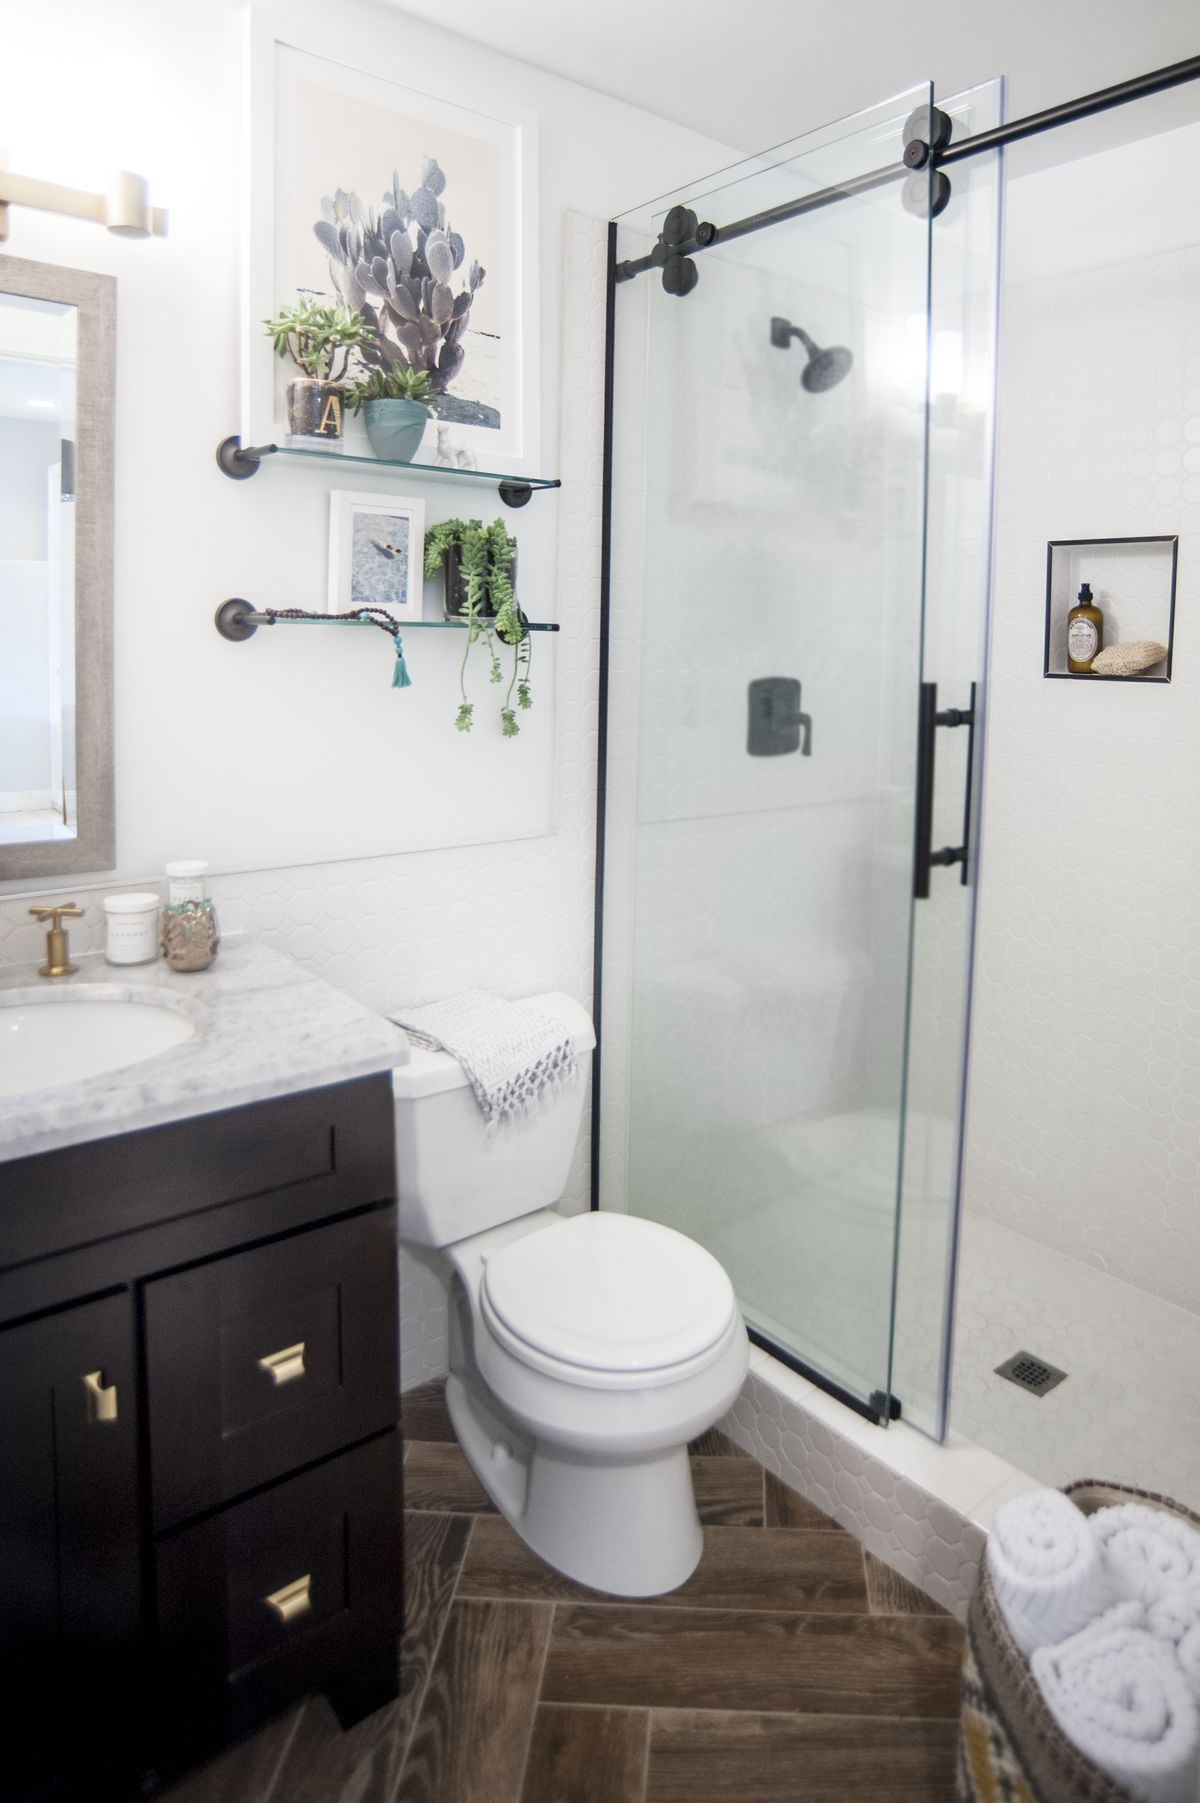 This Bathroom Renovation Tip Will Save You Time And Money Small